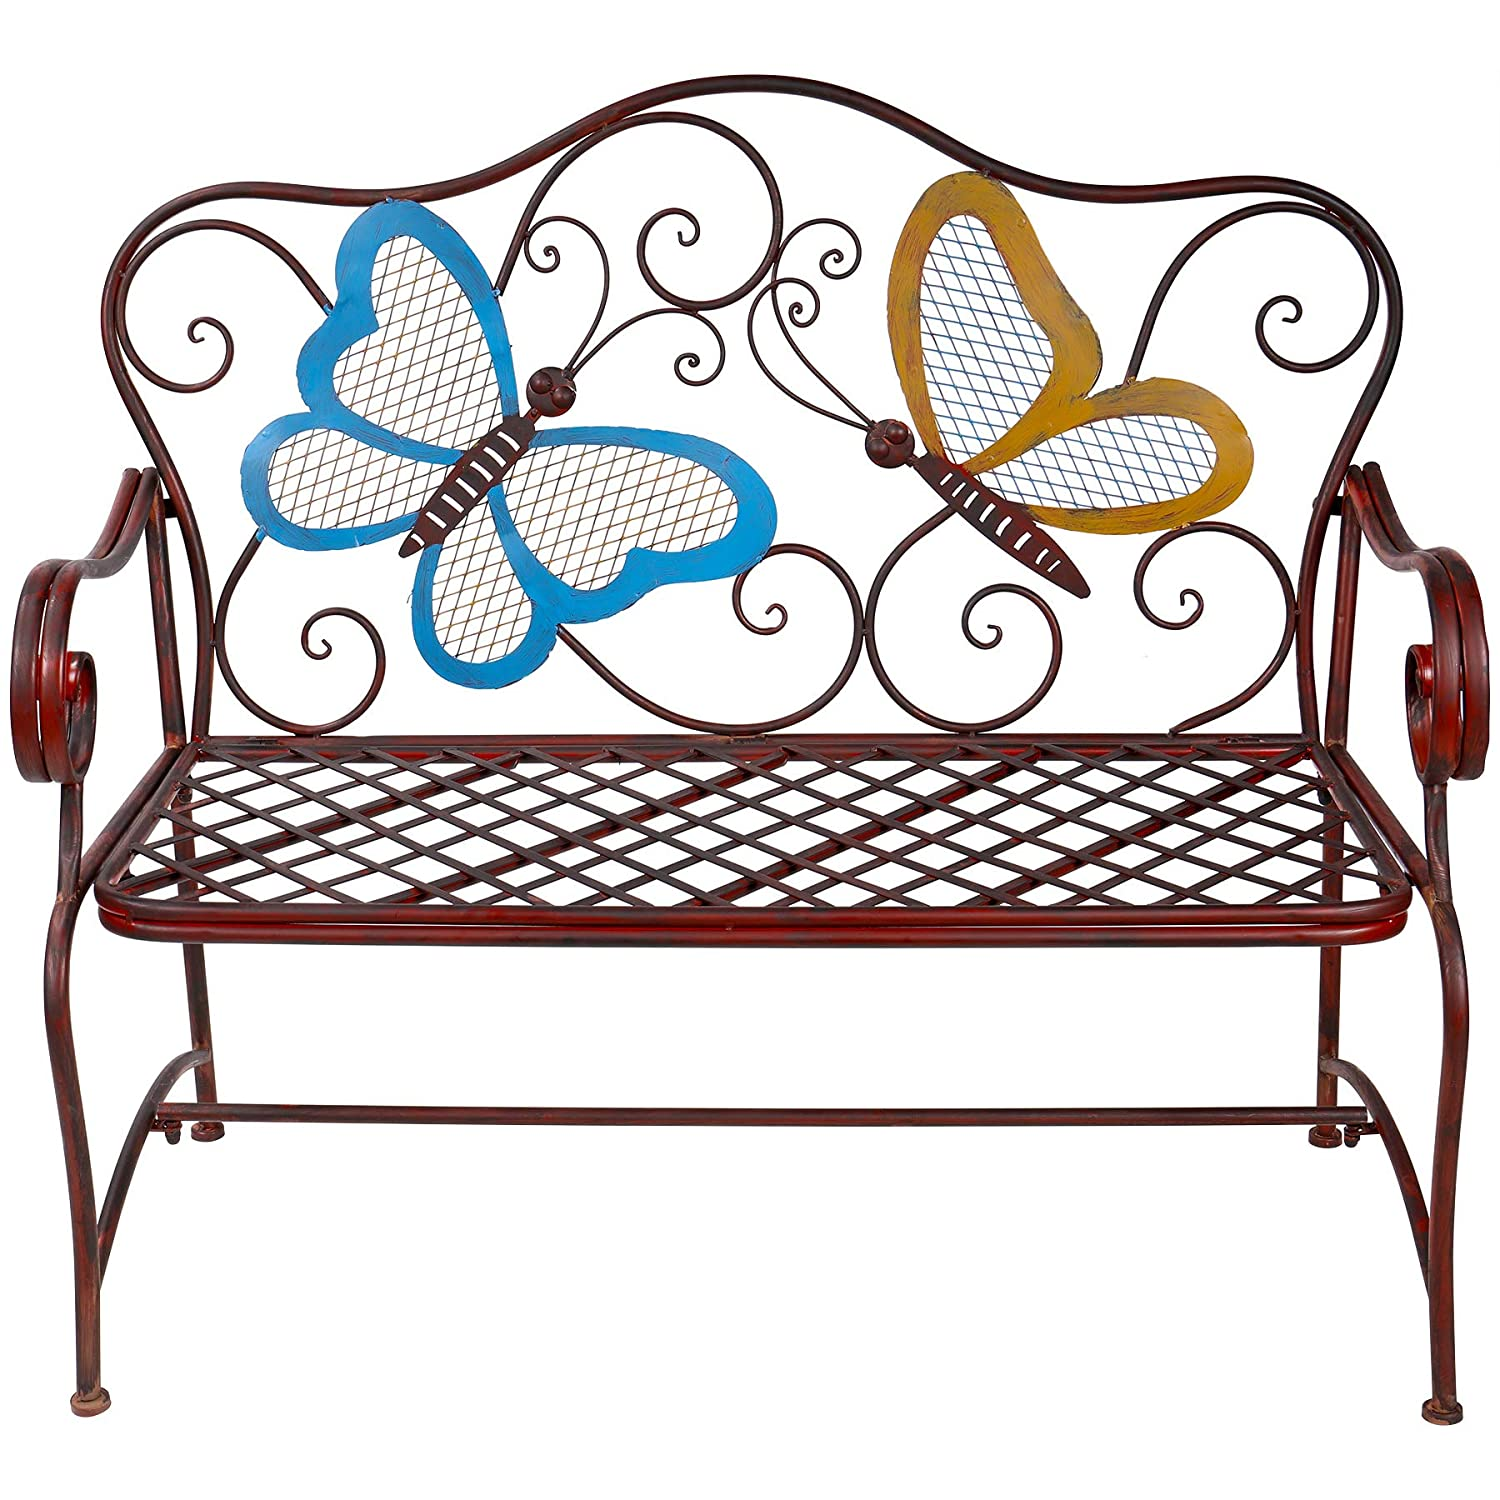 Amazing Alpine Corporation Butterfly Garden Bench Outdoor Decor For Backyard Patio Deck Garden Bronze Pabps2019 Chair Design Images Pabps2019Com